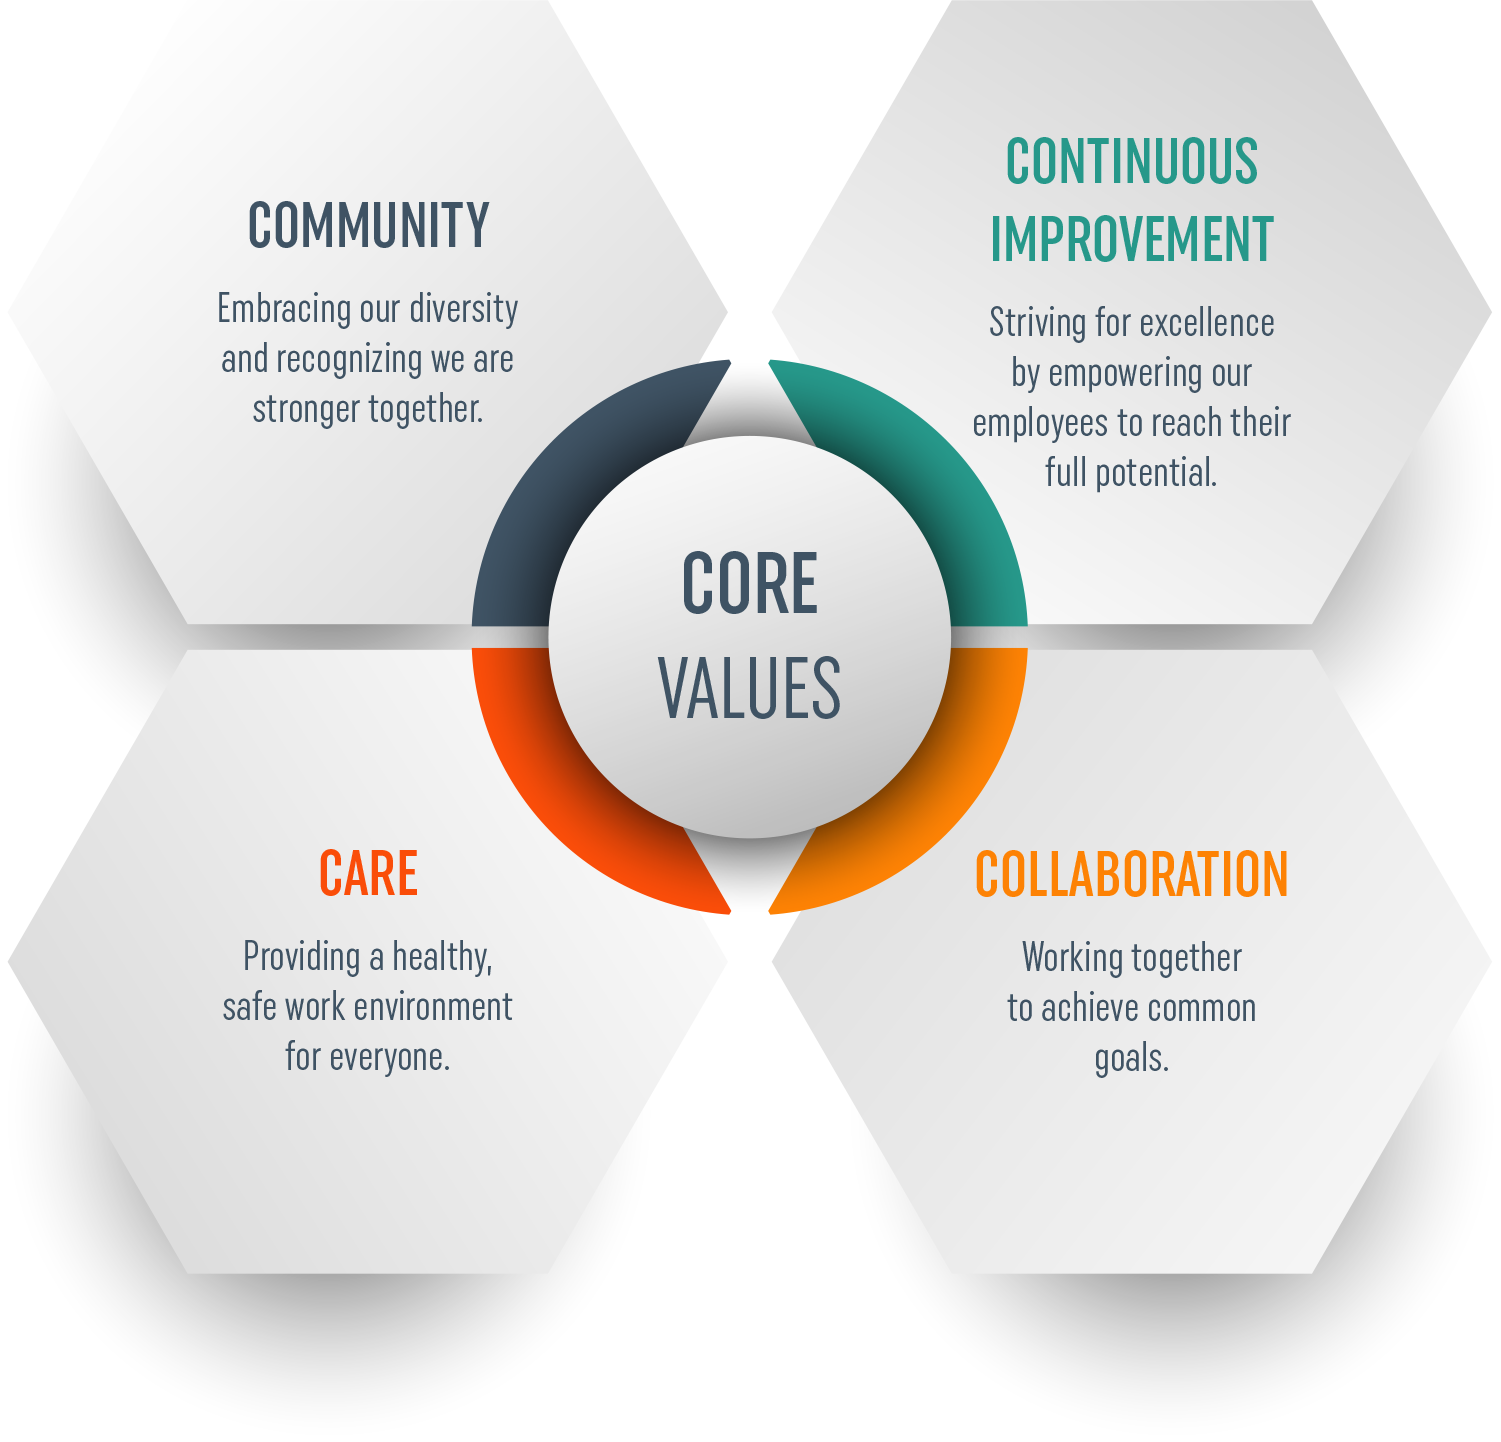 Core Values. Community, Embracing our diversity and recognizing we are stronger together. Continuous Improvement, Striving for excellence by empowering our employees to reach their full potential. Care, Providing a healthy, safe work environment for everyone. Collaboration, Working together to achieve common goals.